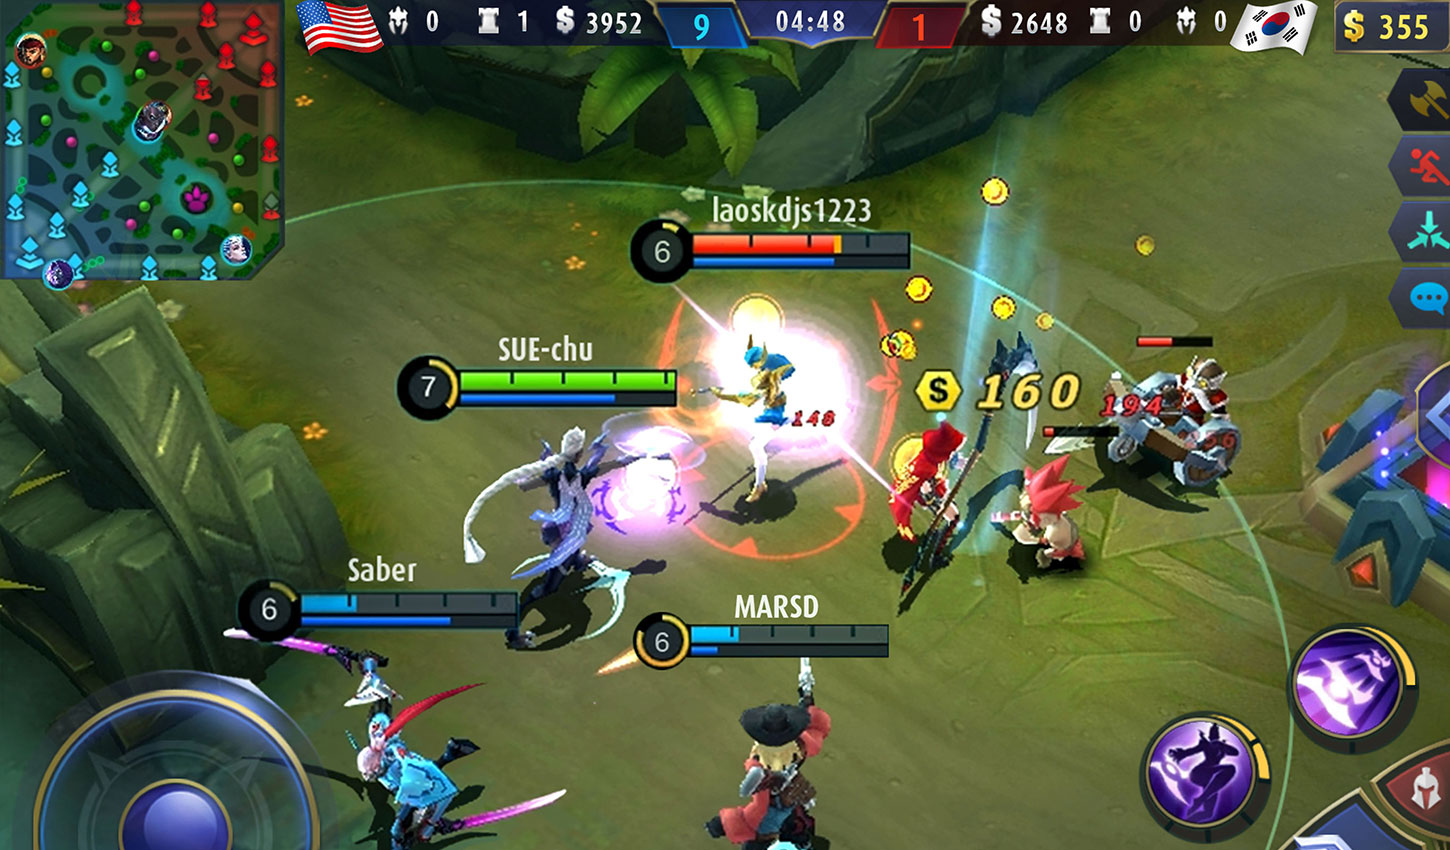 Mobile Legends Screenshot 2